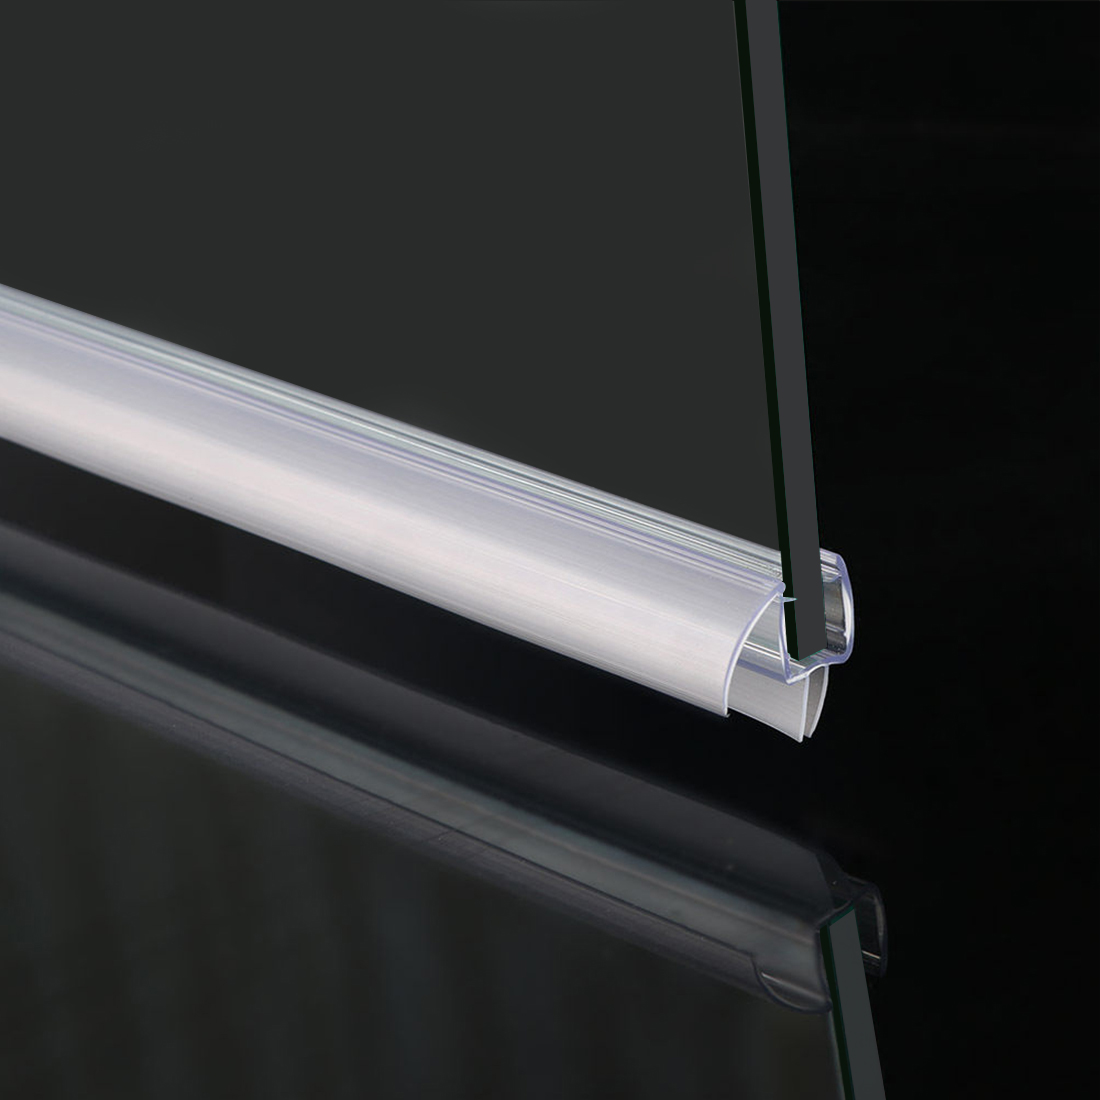 Details About Elegant 3 8 Frameless Glass Shower Door Bottom Seal Sweep Rail 36 In Long